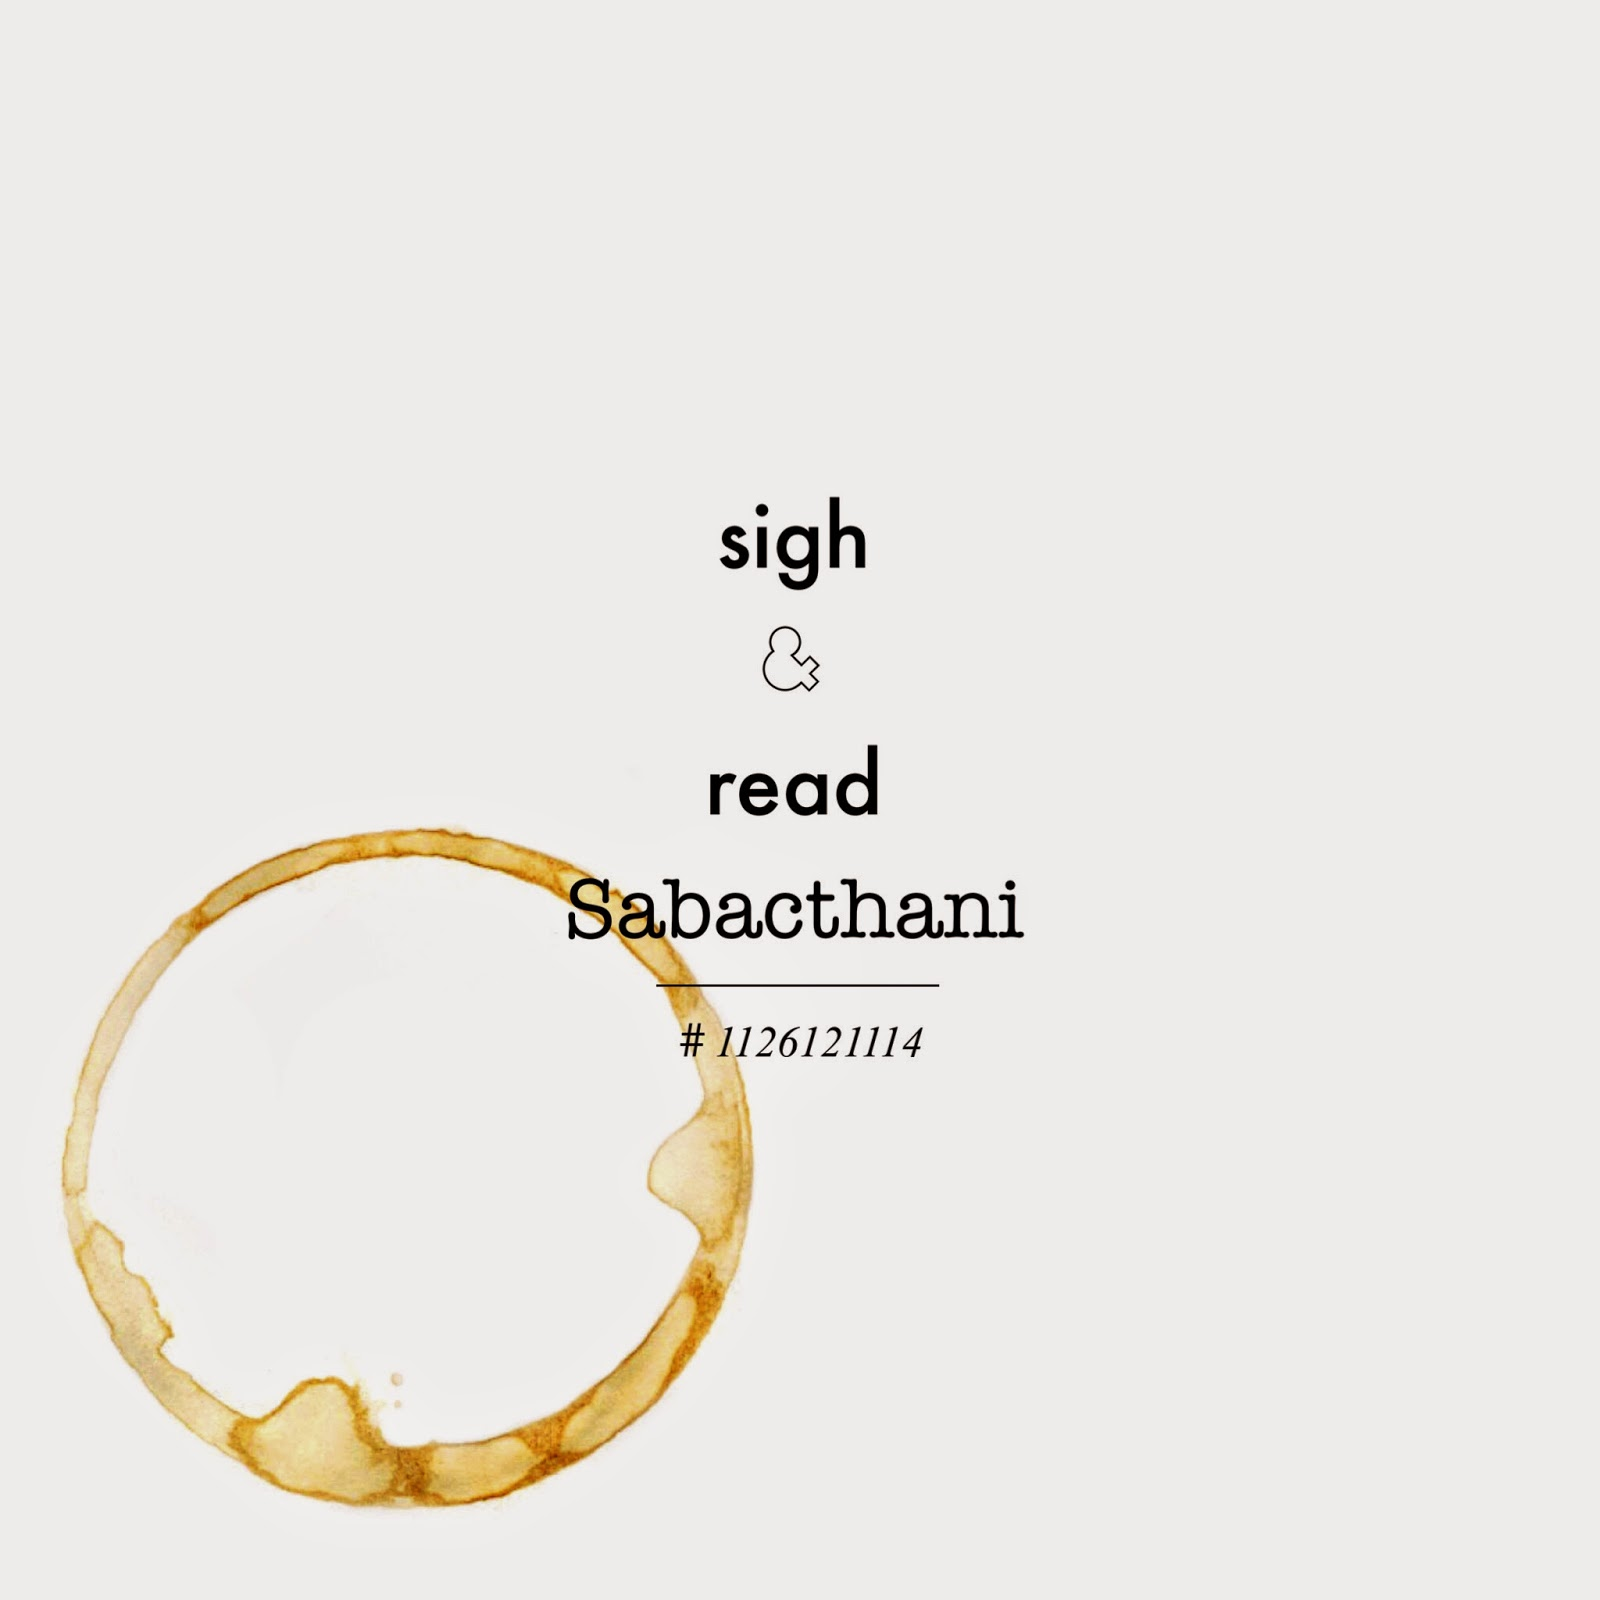 Sabachthani - Sigh and read